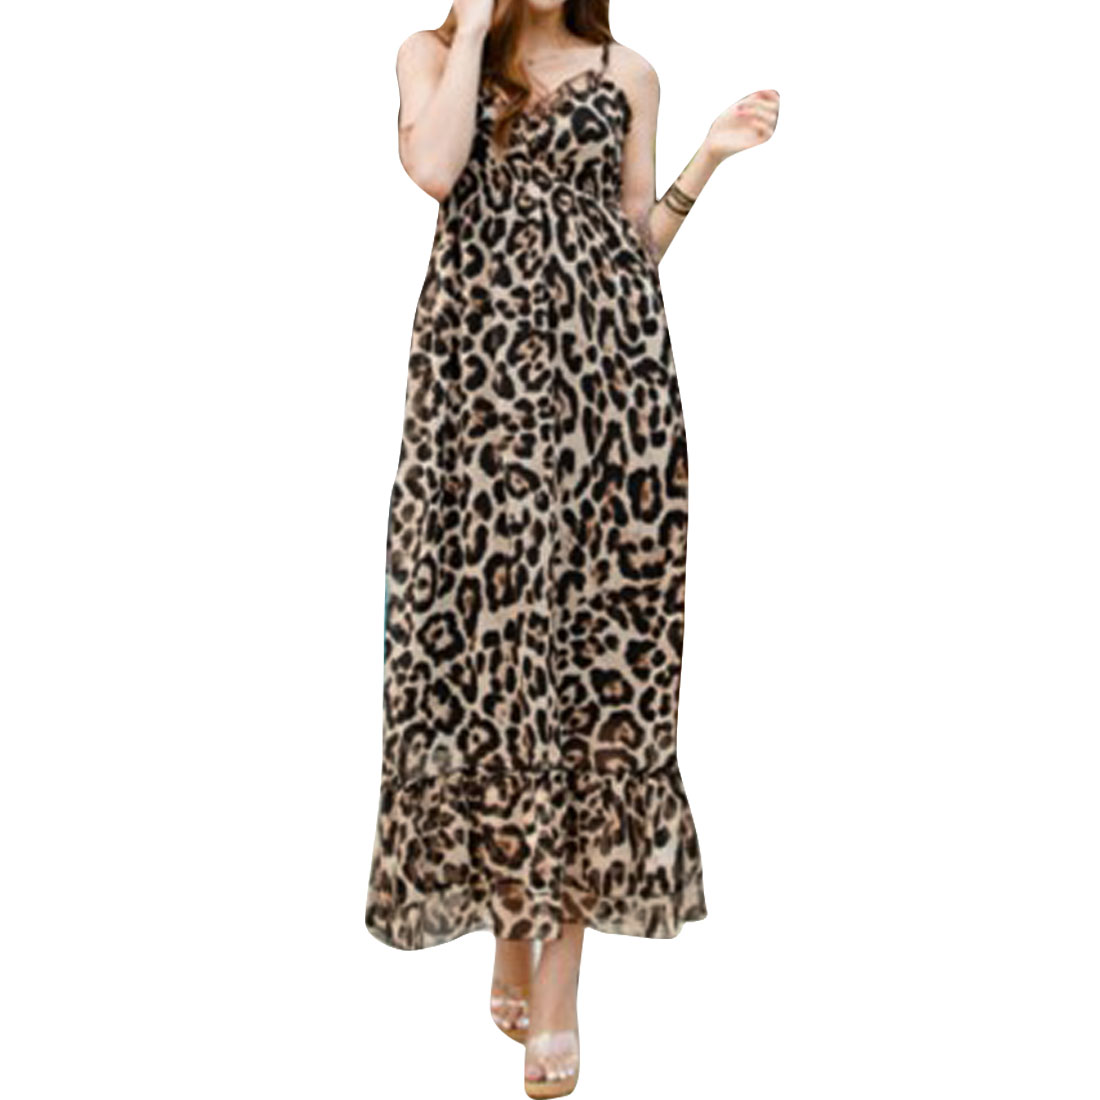 Women Leopard Pattern Deep V Neck Design Spaghetti Strap Dress XS Black